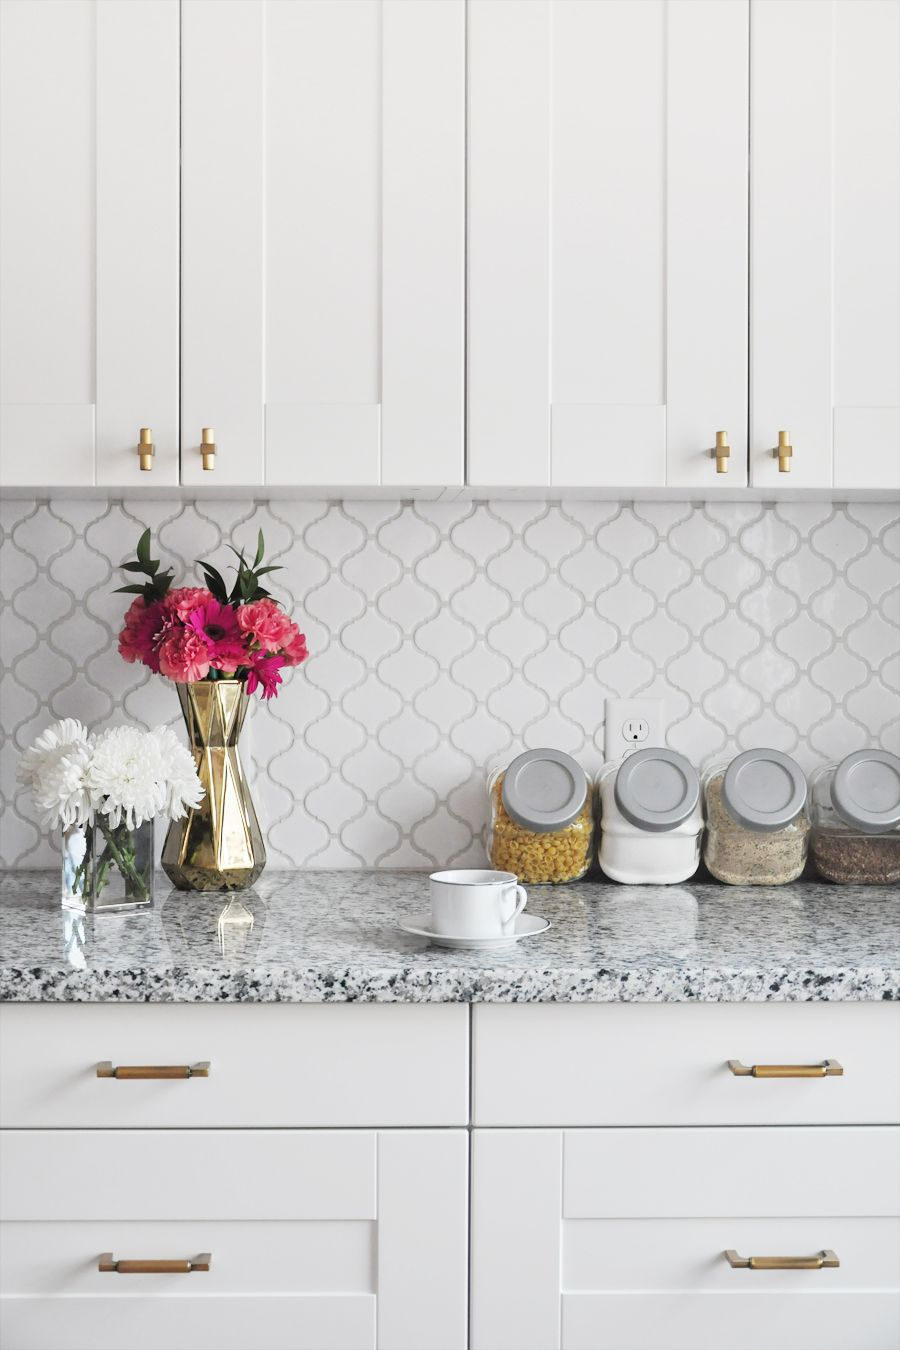 How To Tile A Kitchen Backsplash Diy Tutorial Sponsored By Wayfair